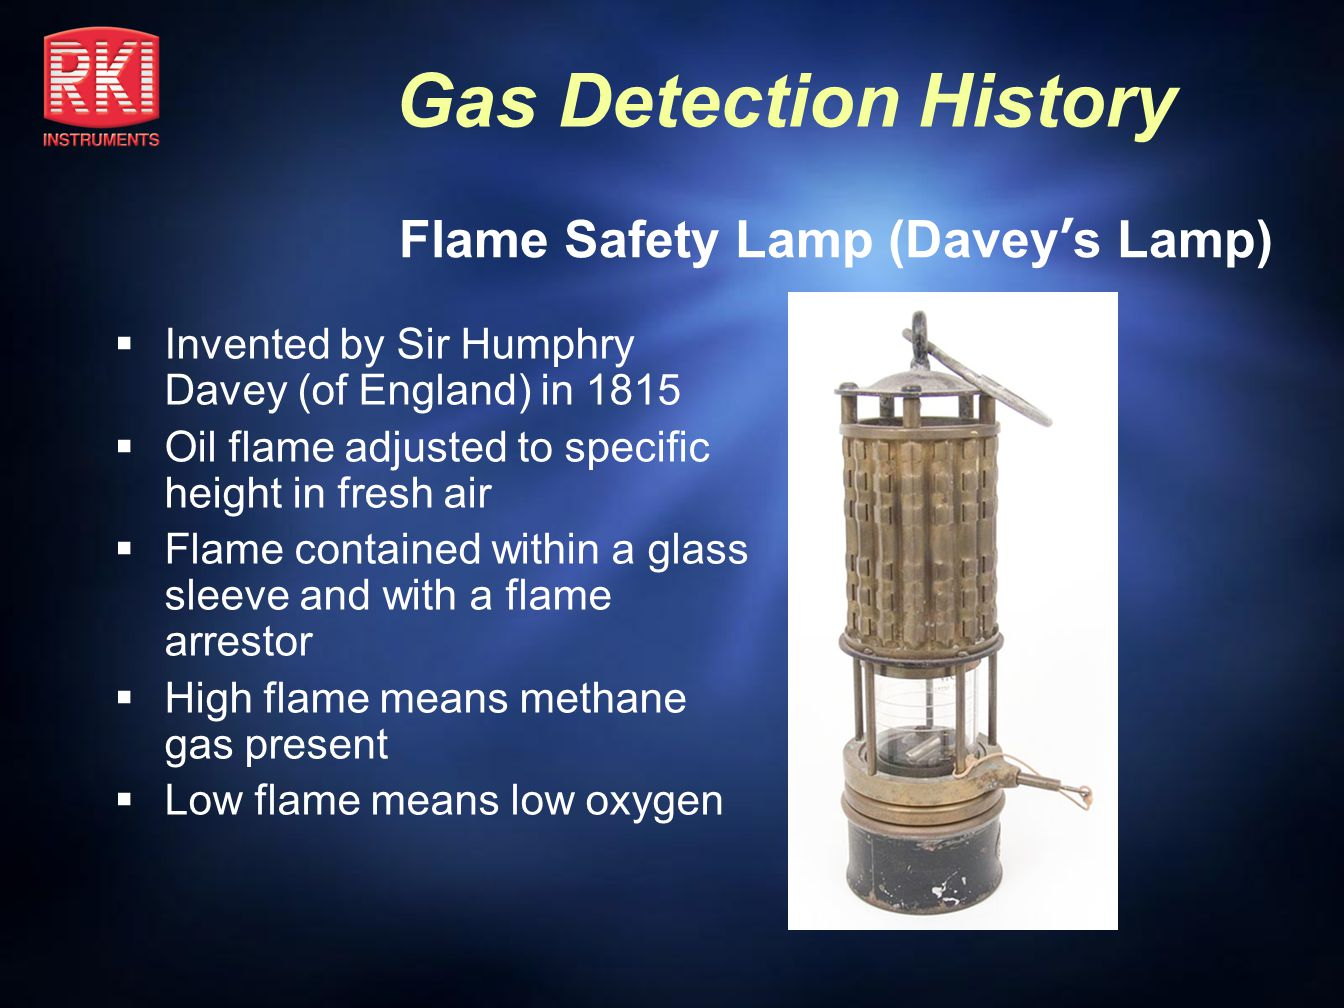 Flame Safety Lamp (Davey's Lamp)